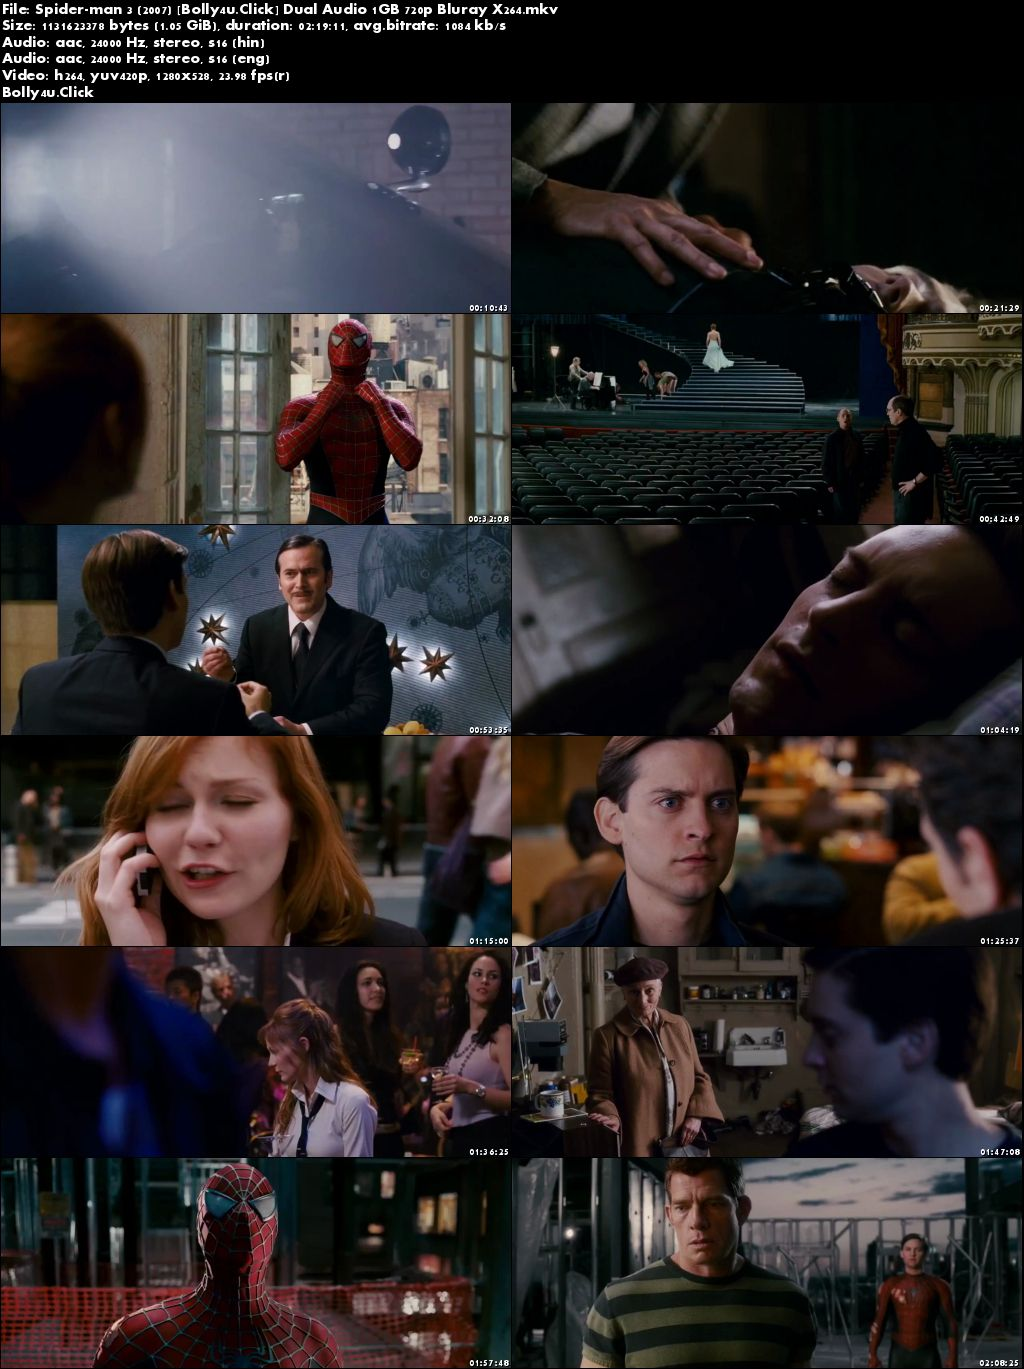 Spider-Man 3 2007 BRRip 1GB Hindi Dual Audio 720p Download